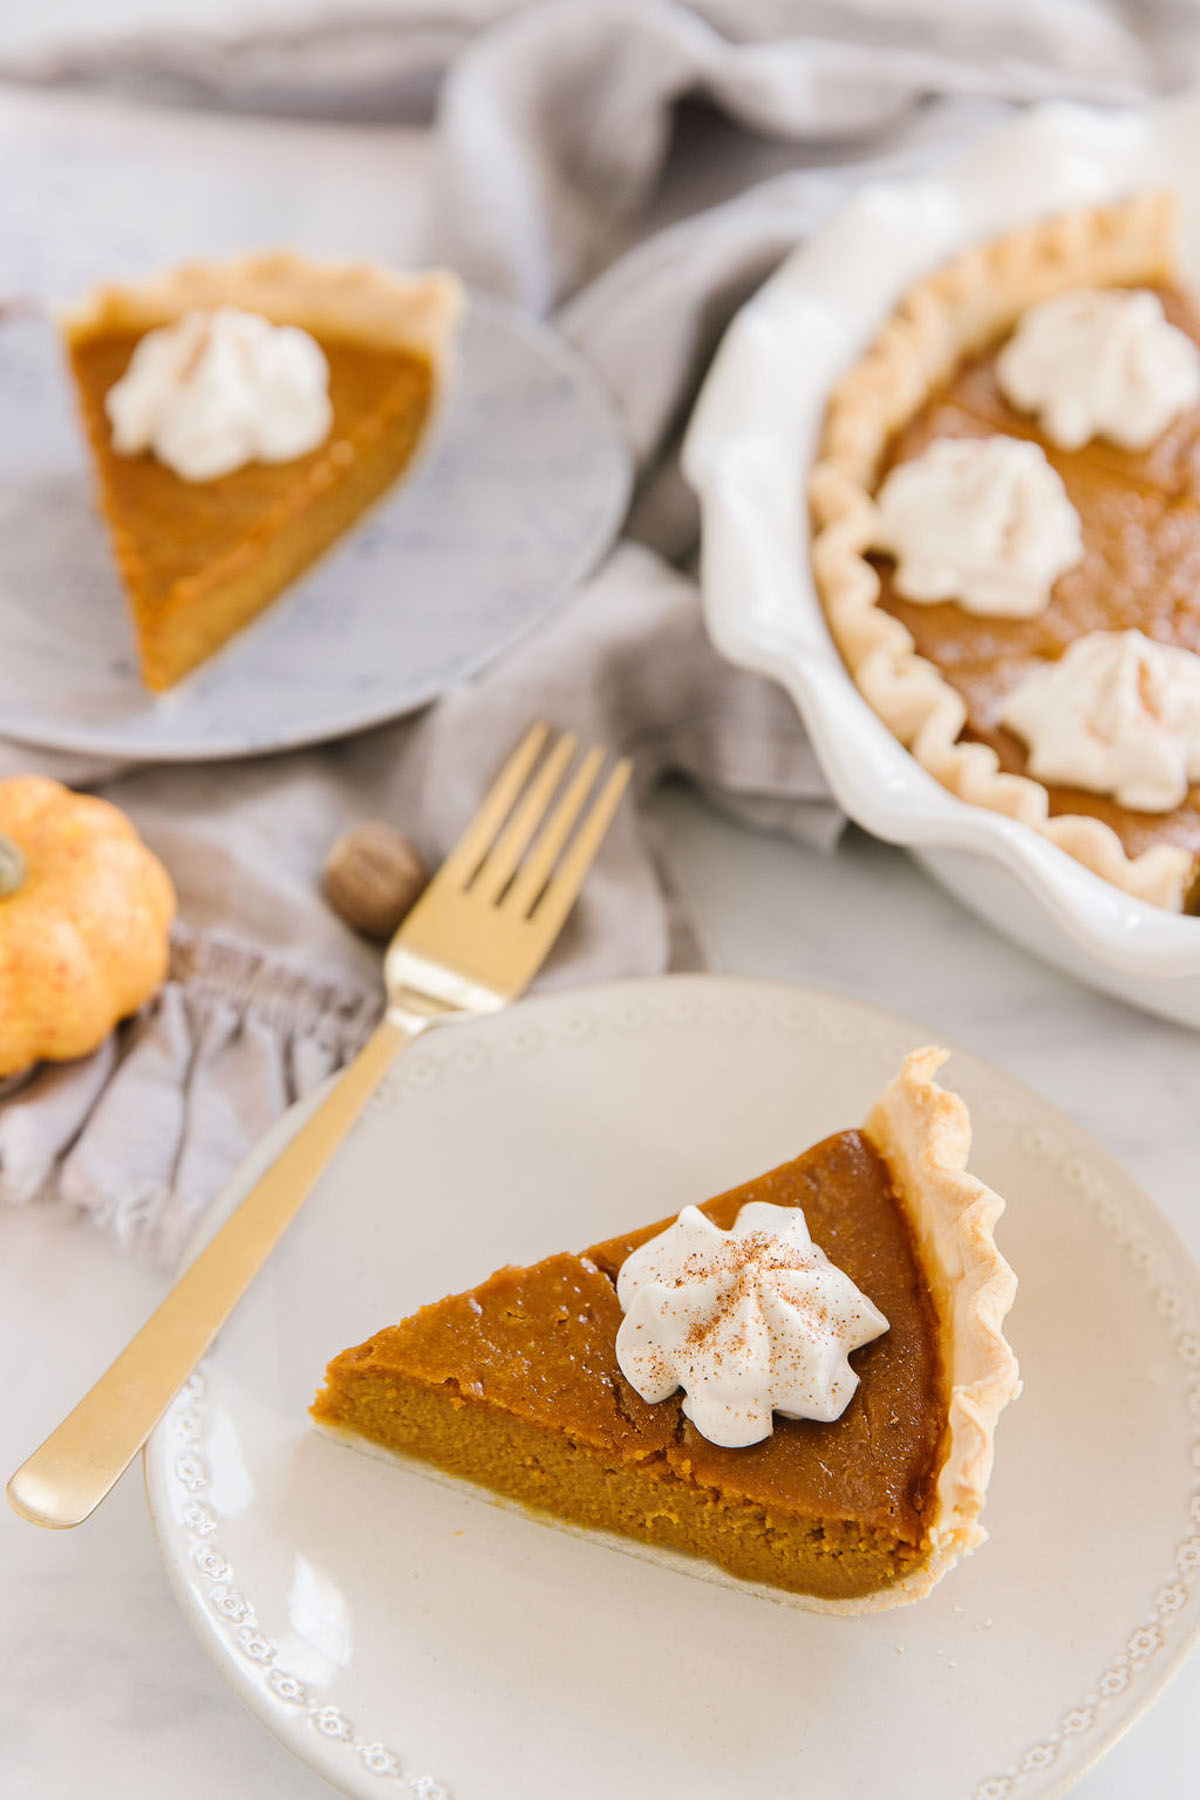 A white plate with a pumpkin pie wedge with a dollop of whipped cream on it with a gold fork on it. Behind is another pie piece on a plate and the rest of the pie in a white pan.